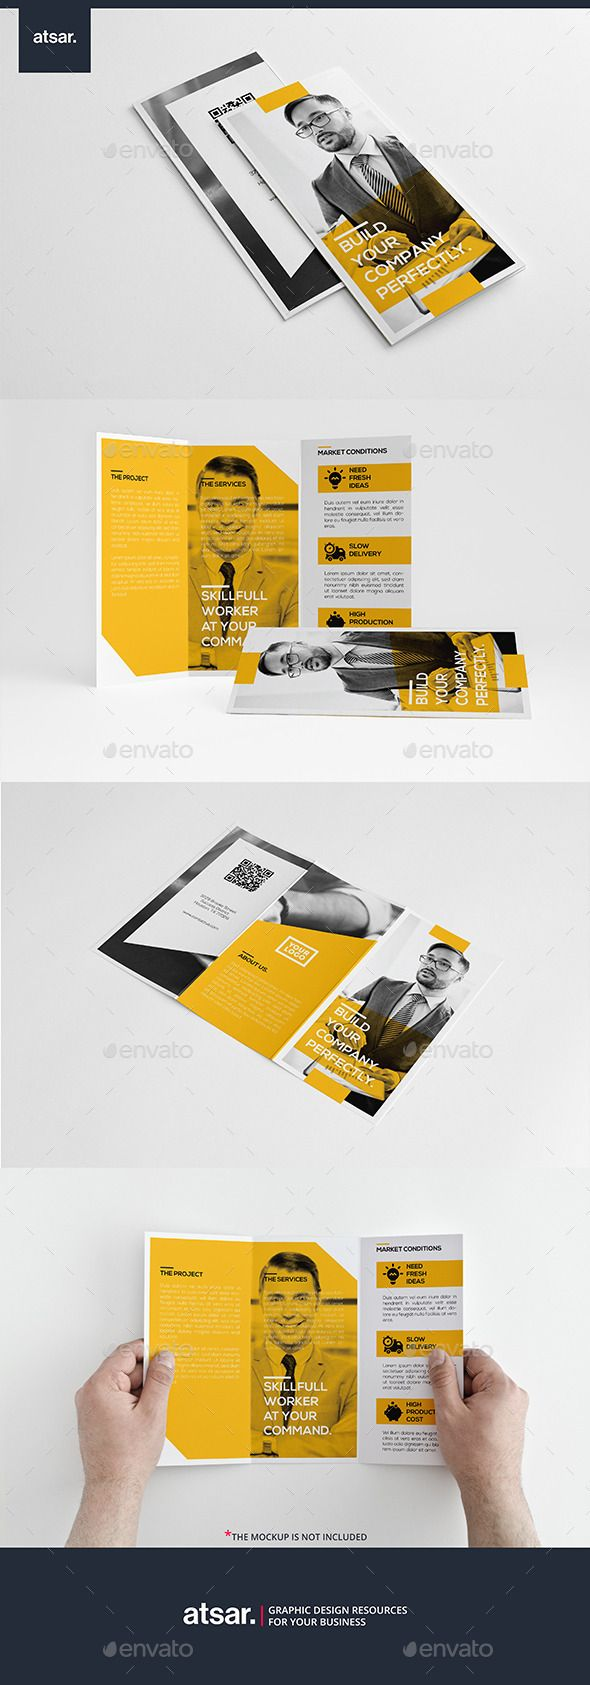 Yellow Simple Trifold